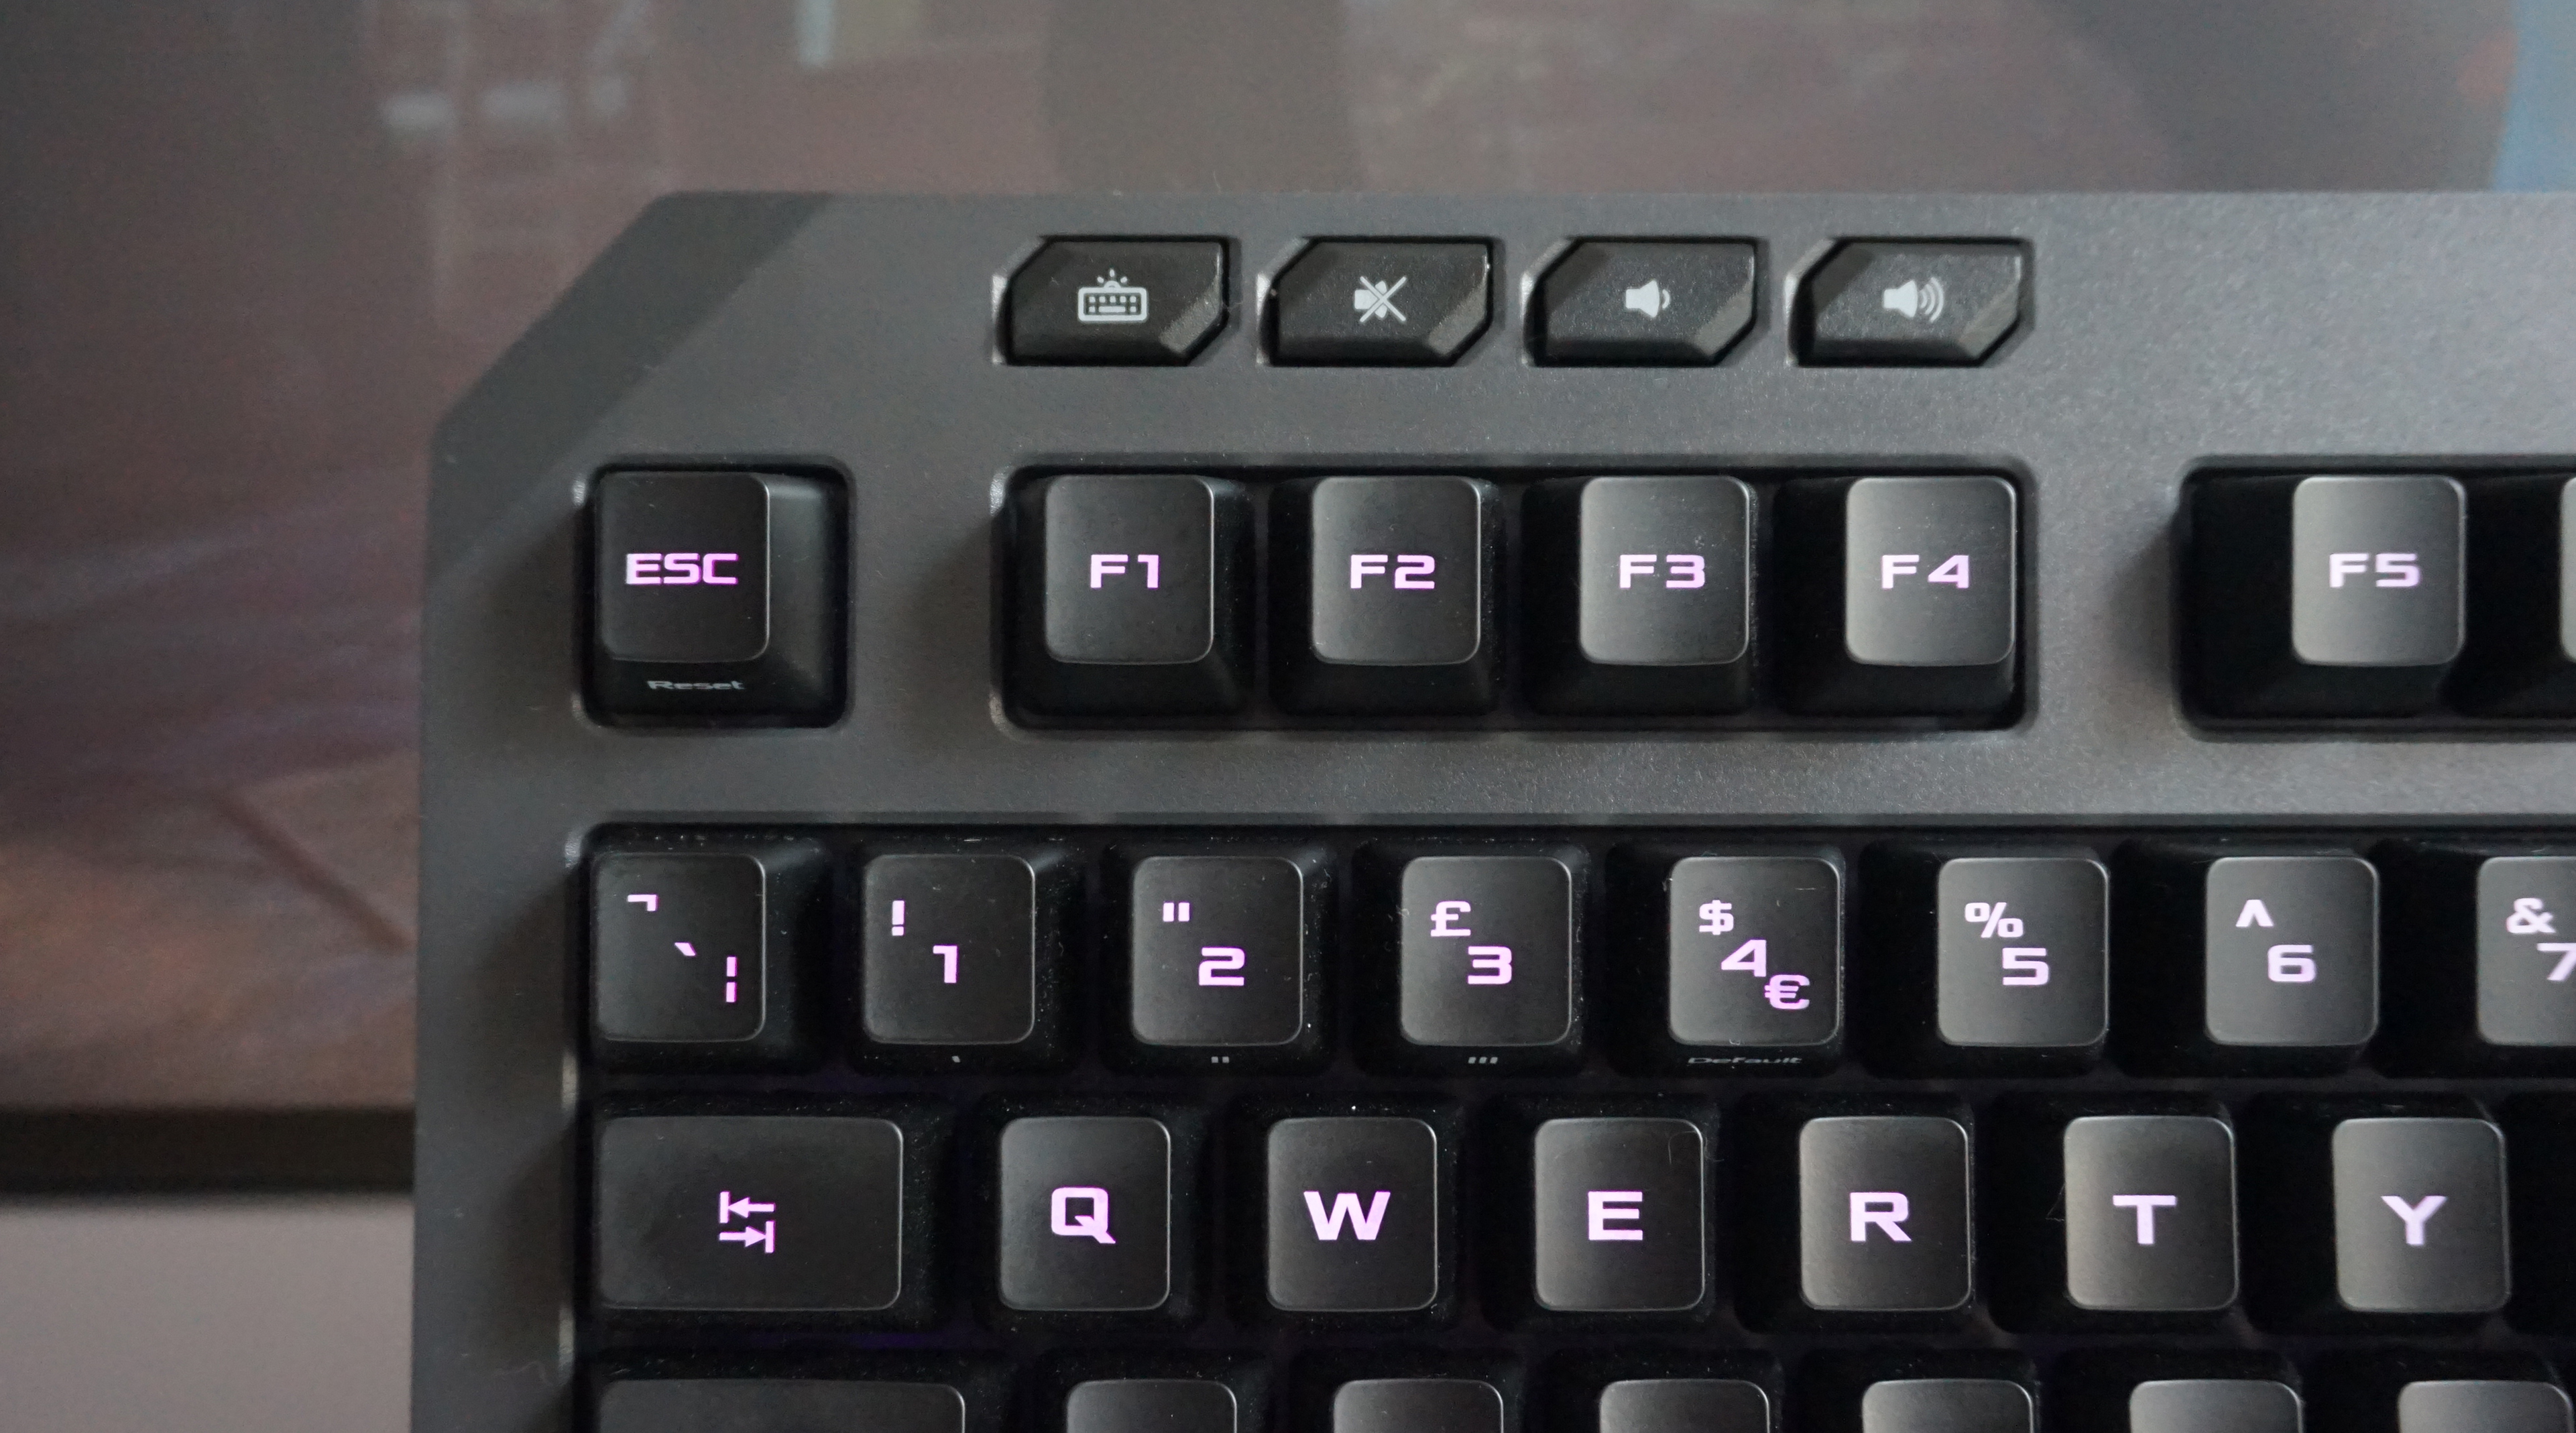 fb6c0d9fee3 The K5 comes with a decent number of extra features, too, including  dedicated volume keys and a button to change the brightness of its RGB  lighting (or turn ...